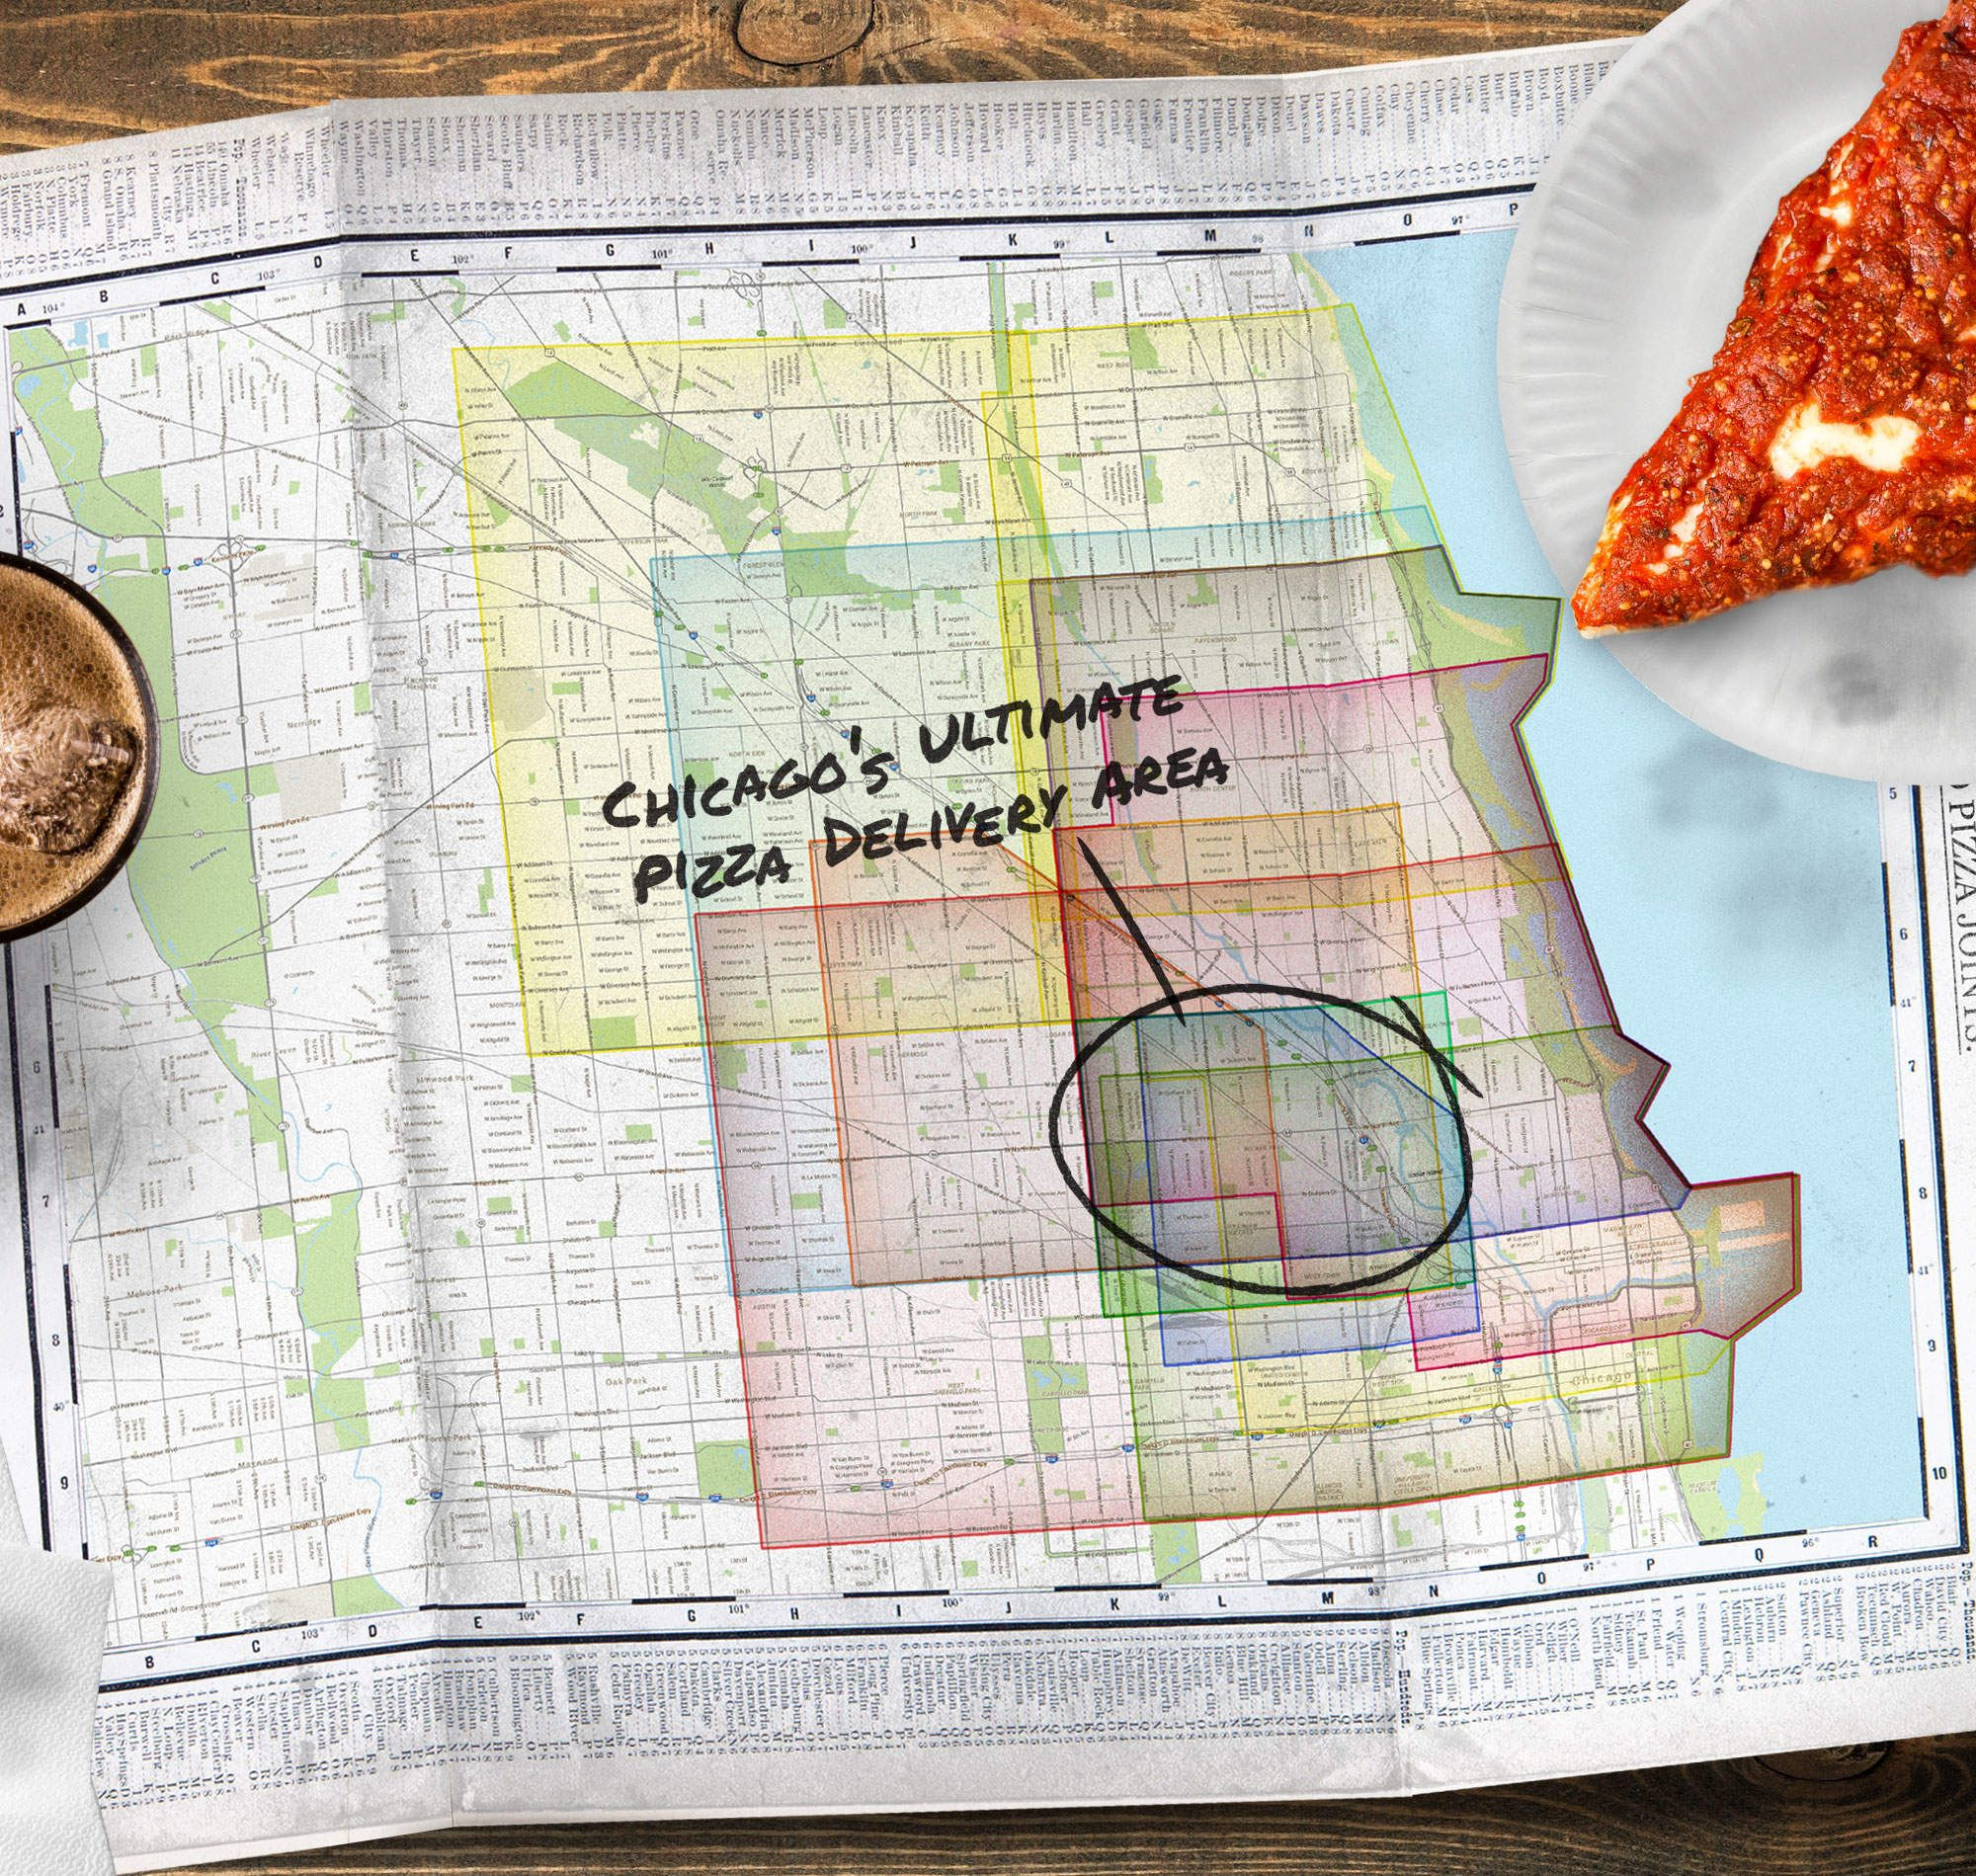 What Is the Holy Grail of Chicago Pizza Delivery Addresses?